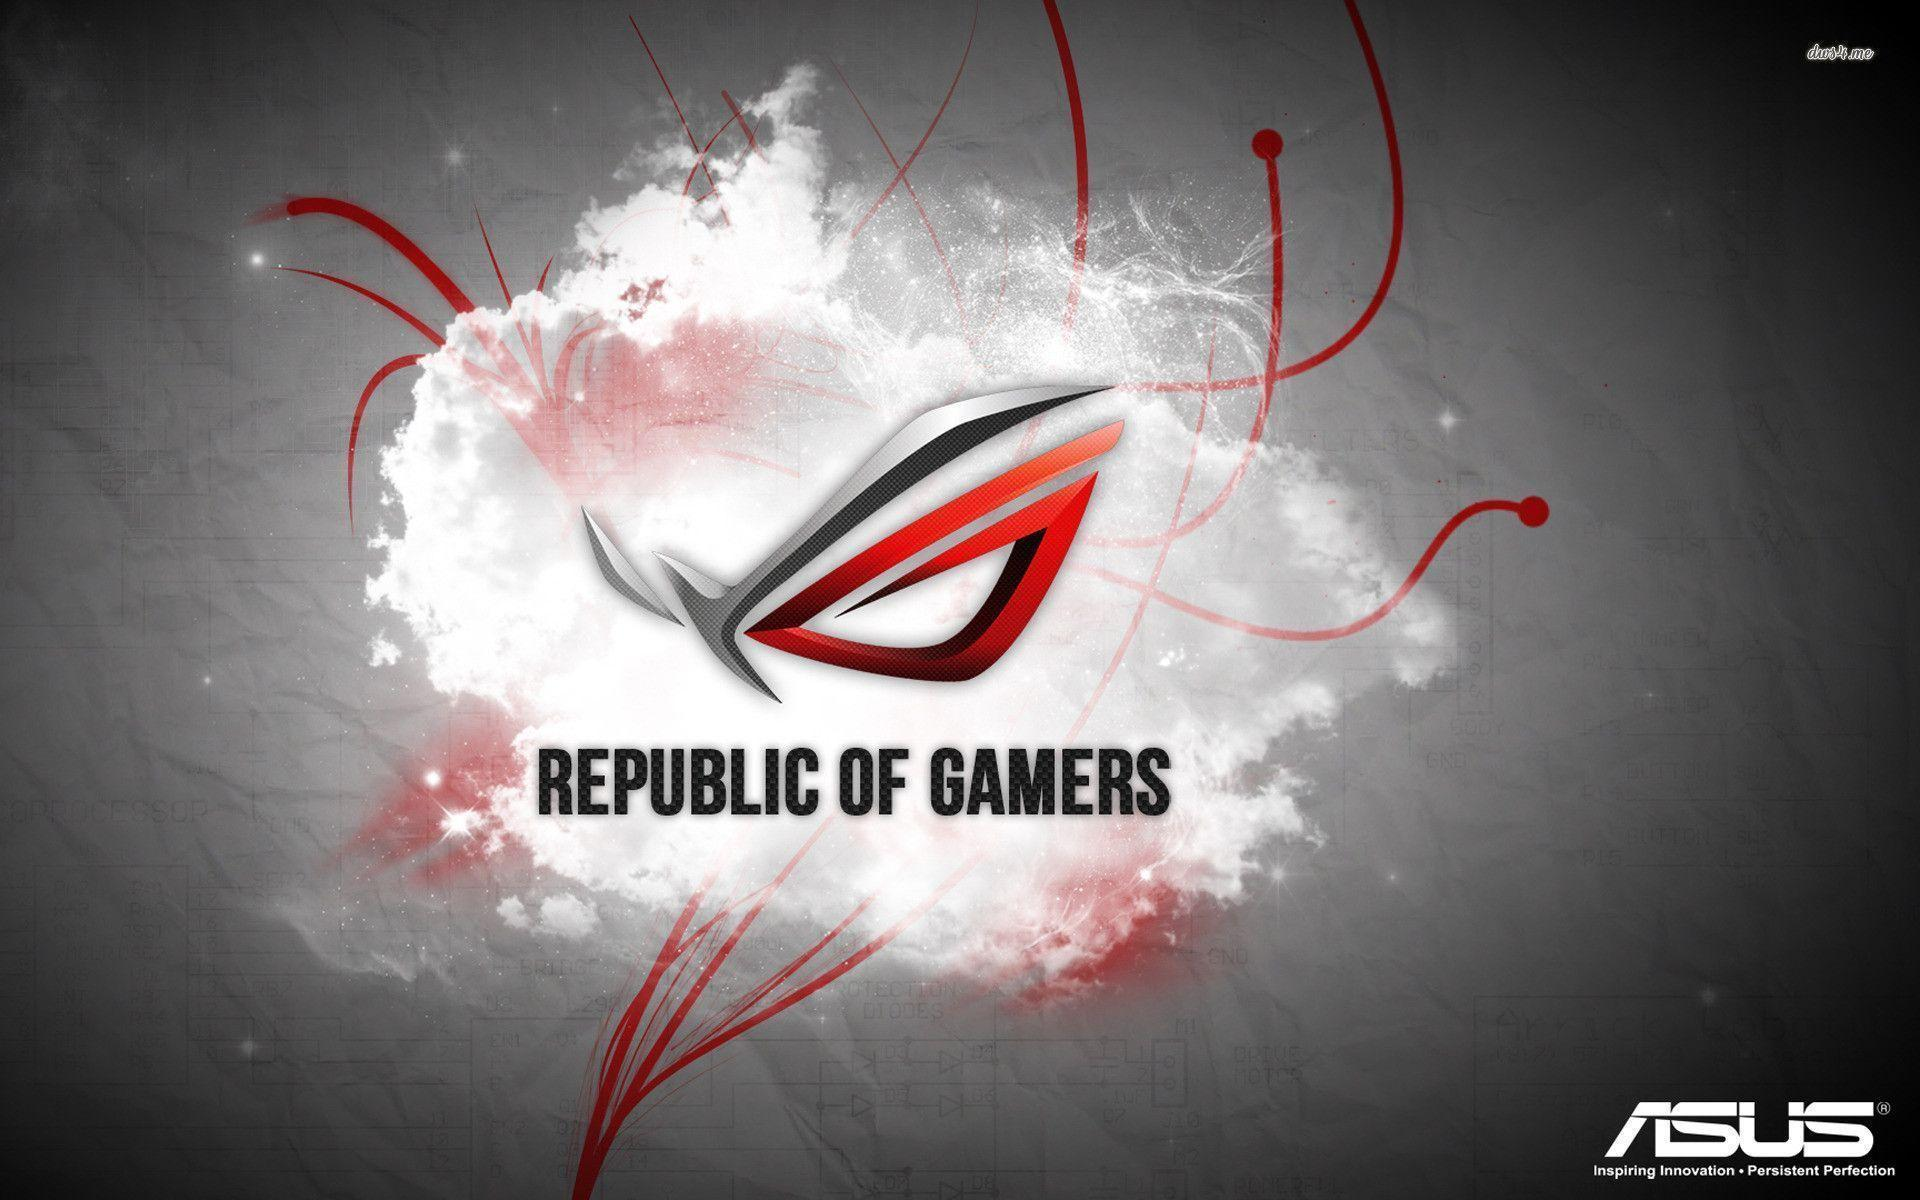 Republic of Gamers wallpaper - Computer wallpapers - #